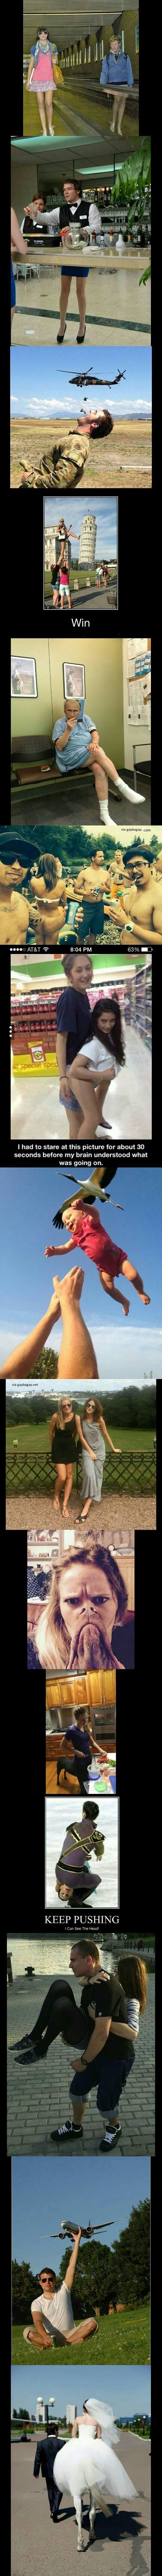 Top 15 Perfectly Timed Funny Photoes